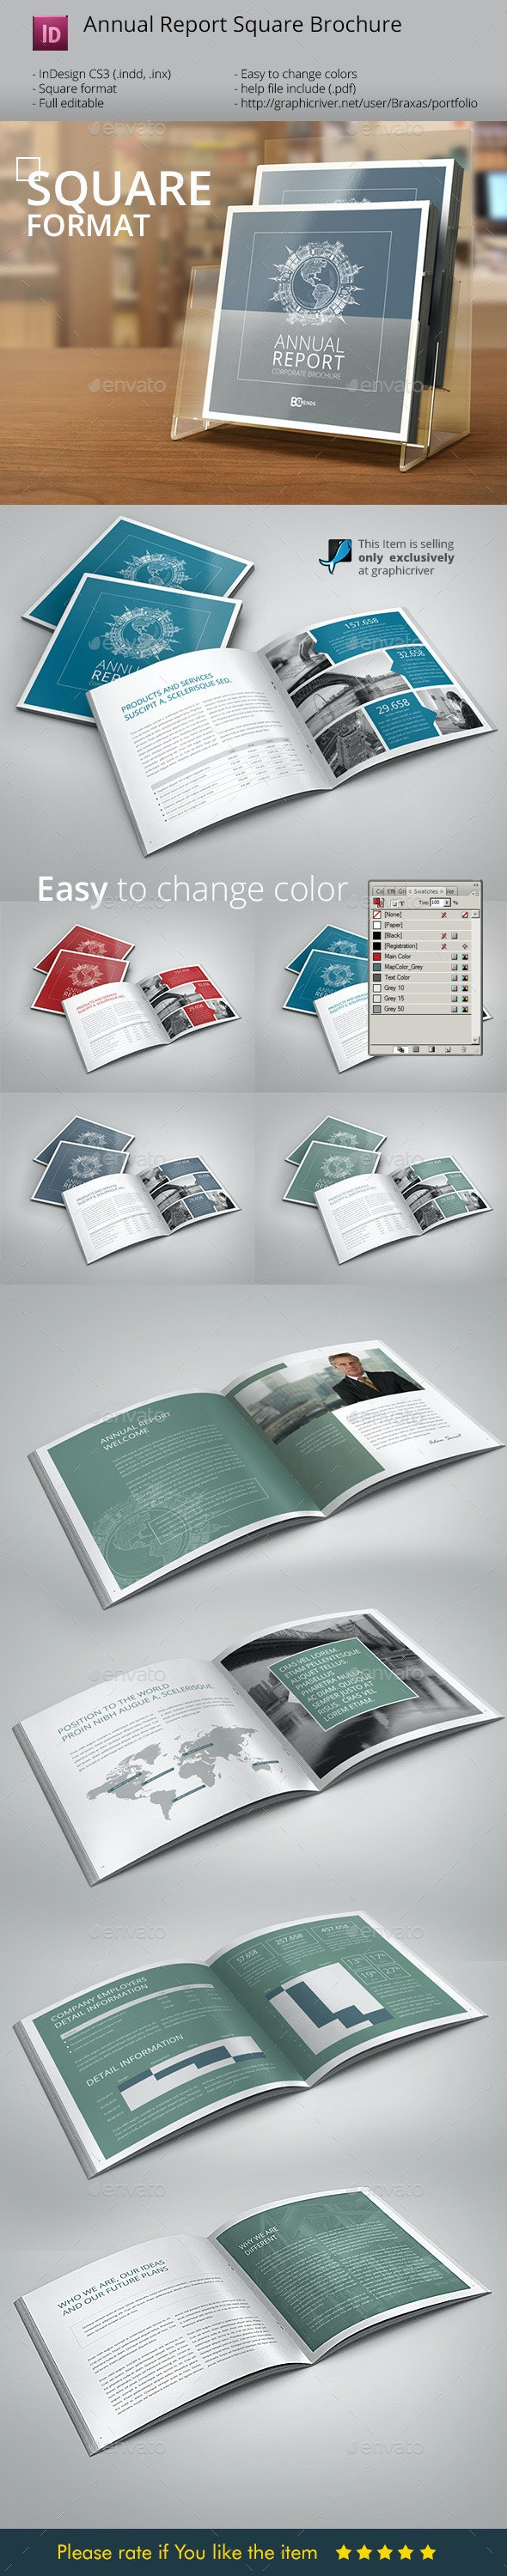 Annual Report InDesign Square Brochure - Informational Brochures